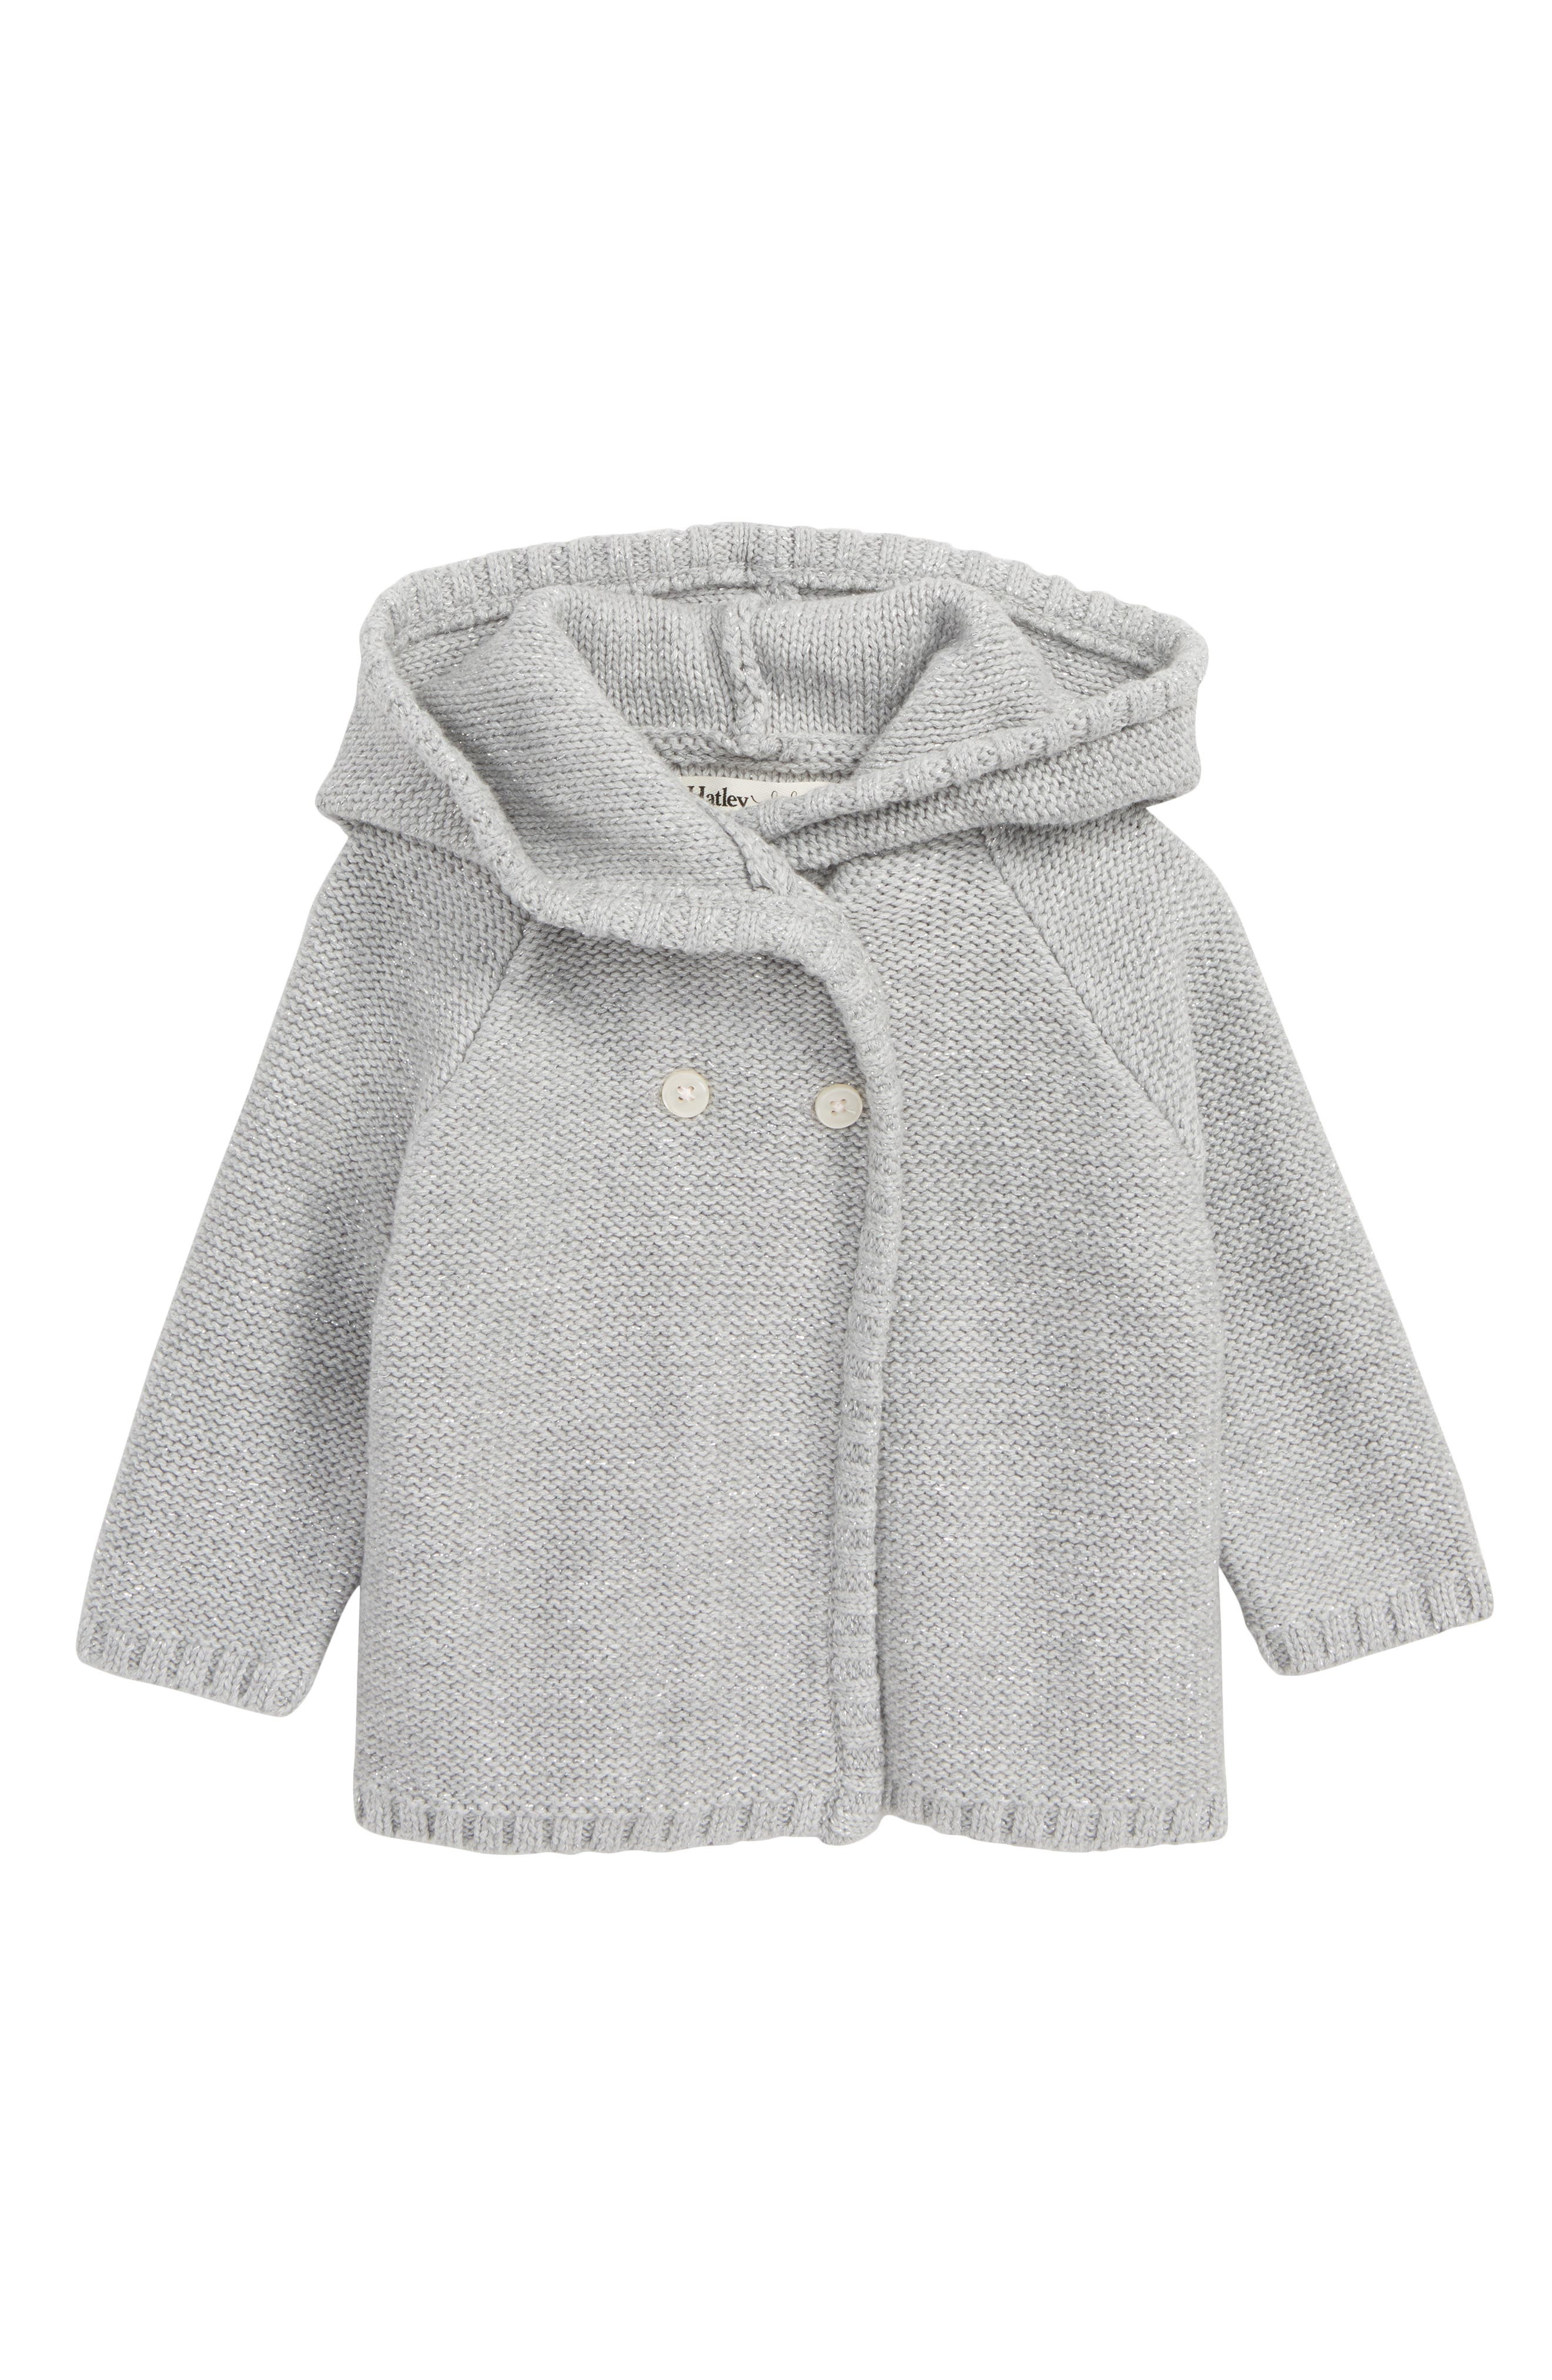 HATLEY Hooded Sweater, Main, color, 020